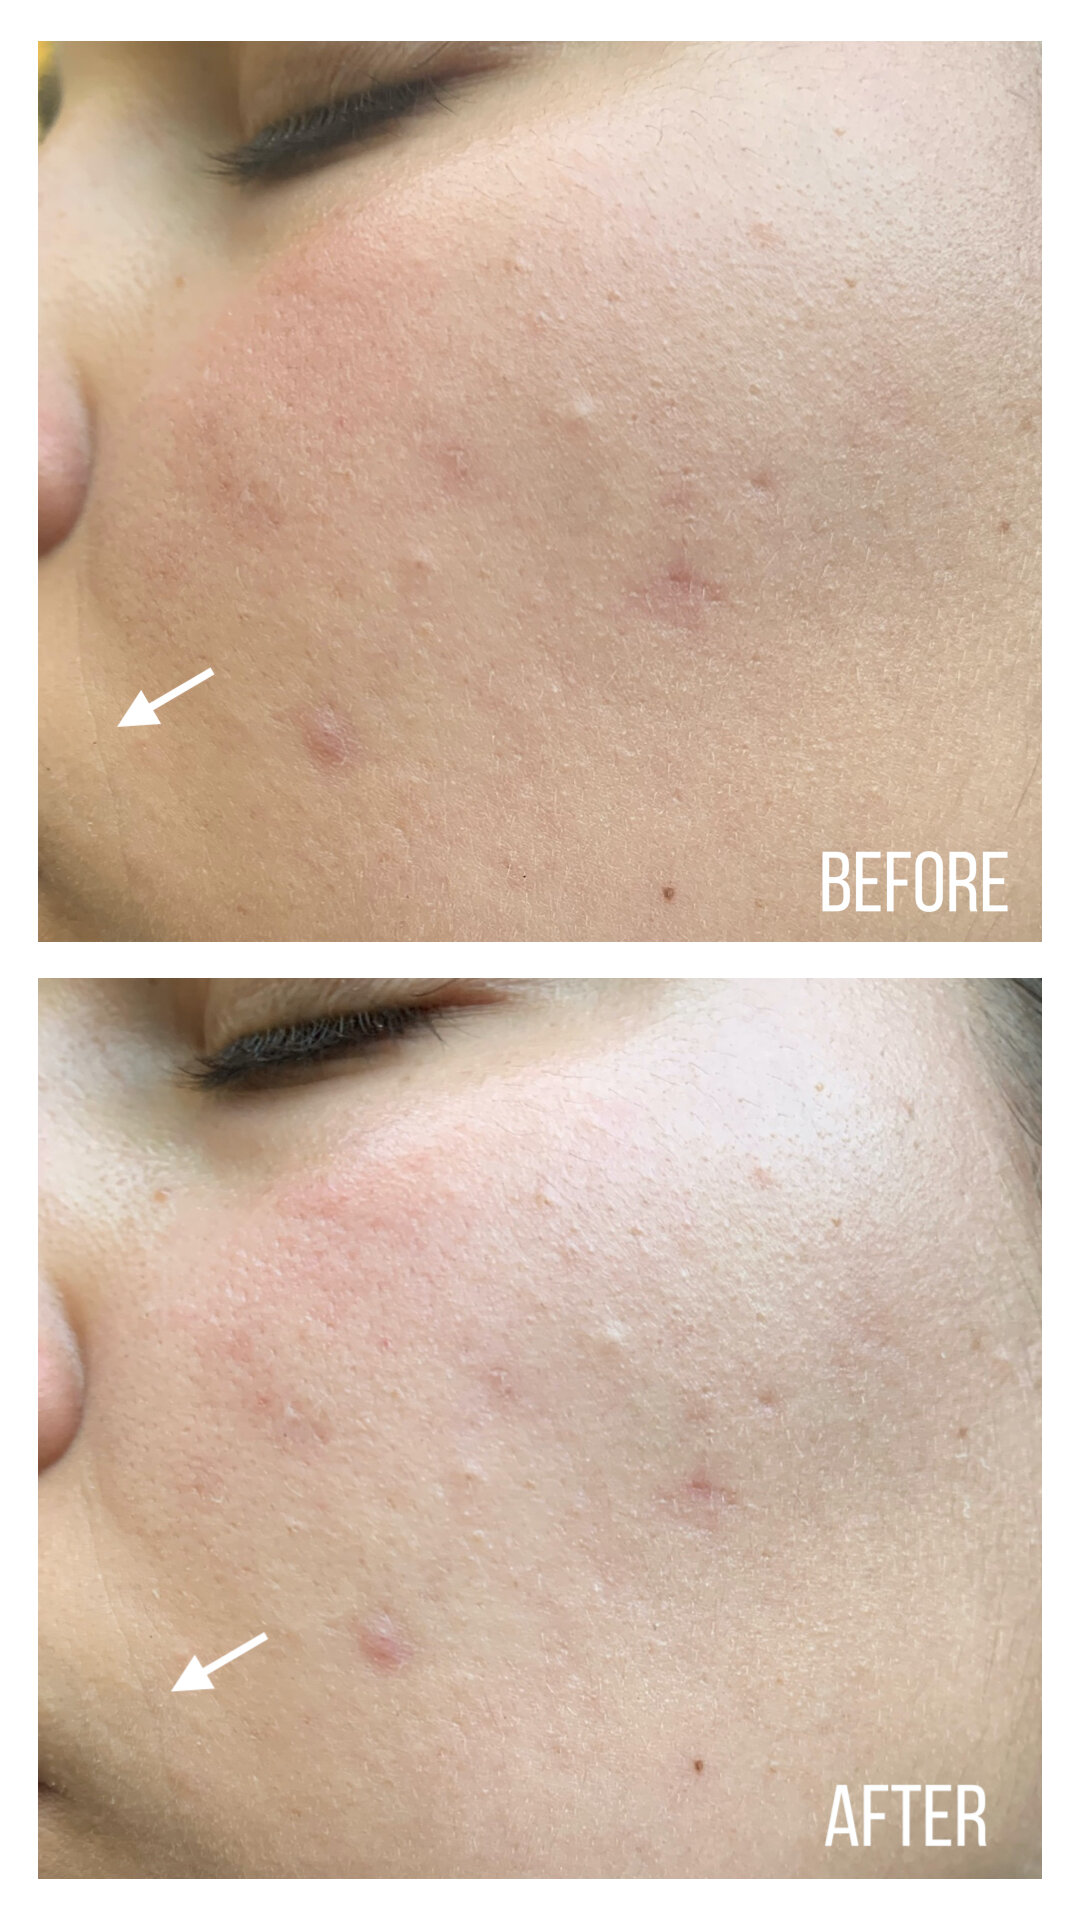 Krave Beauty Oat So Simple Water Cream (Before and After)